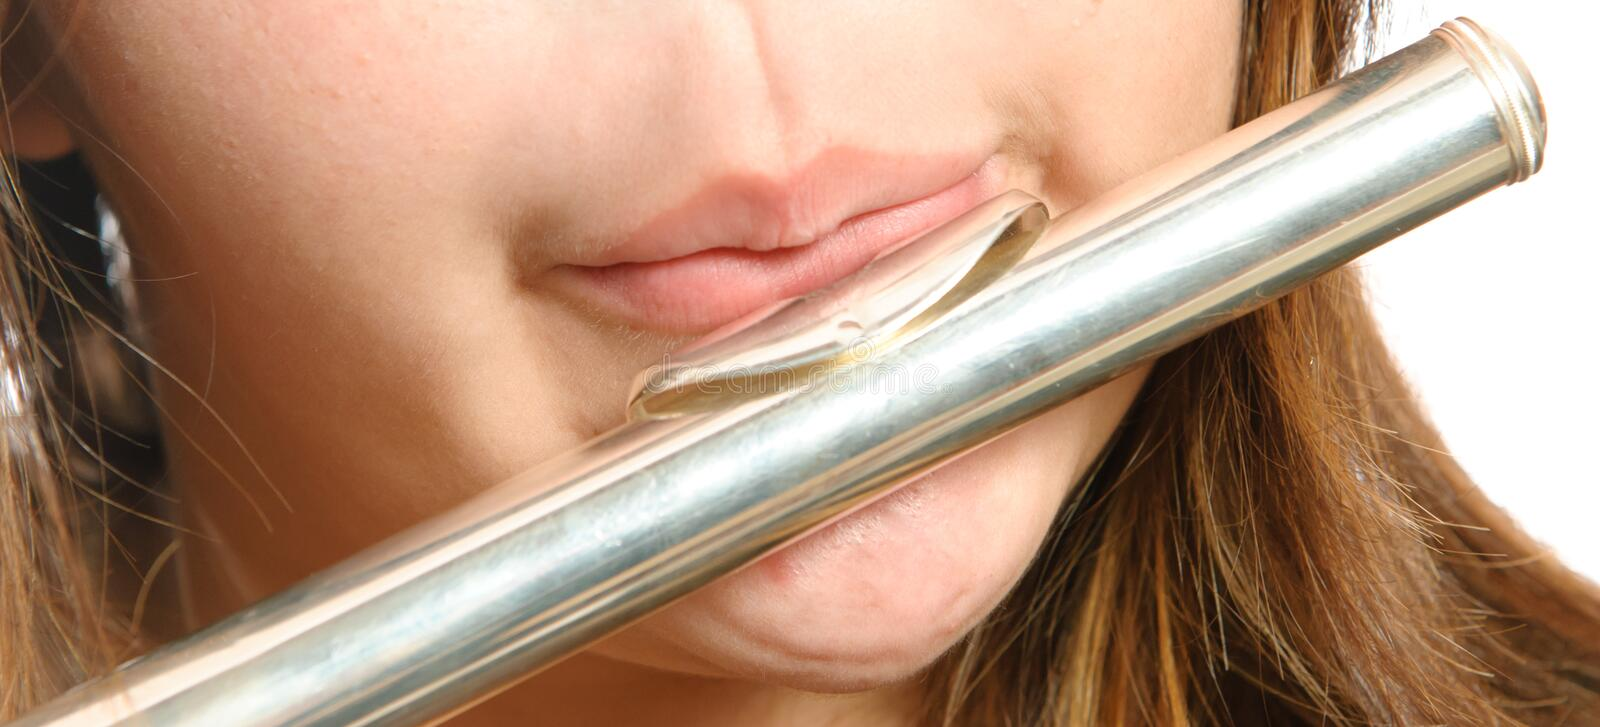 Closeup Flute Blowing. Closeup view of the way you are supposed to blow on the mouth piece of a flute for it to make noise stock images